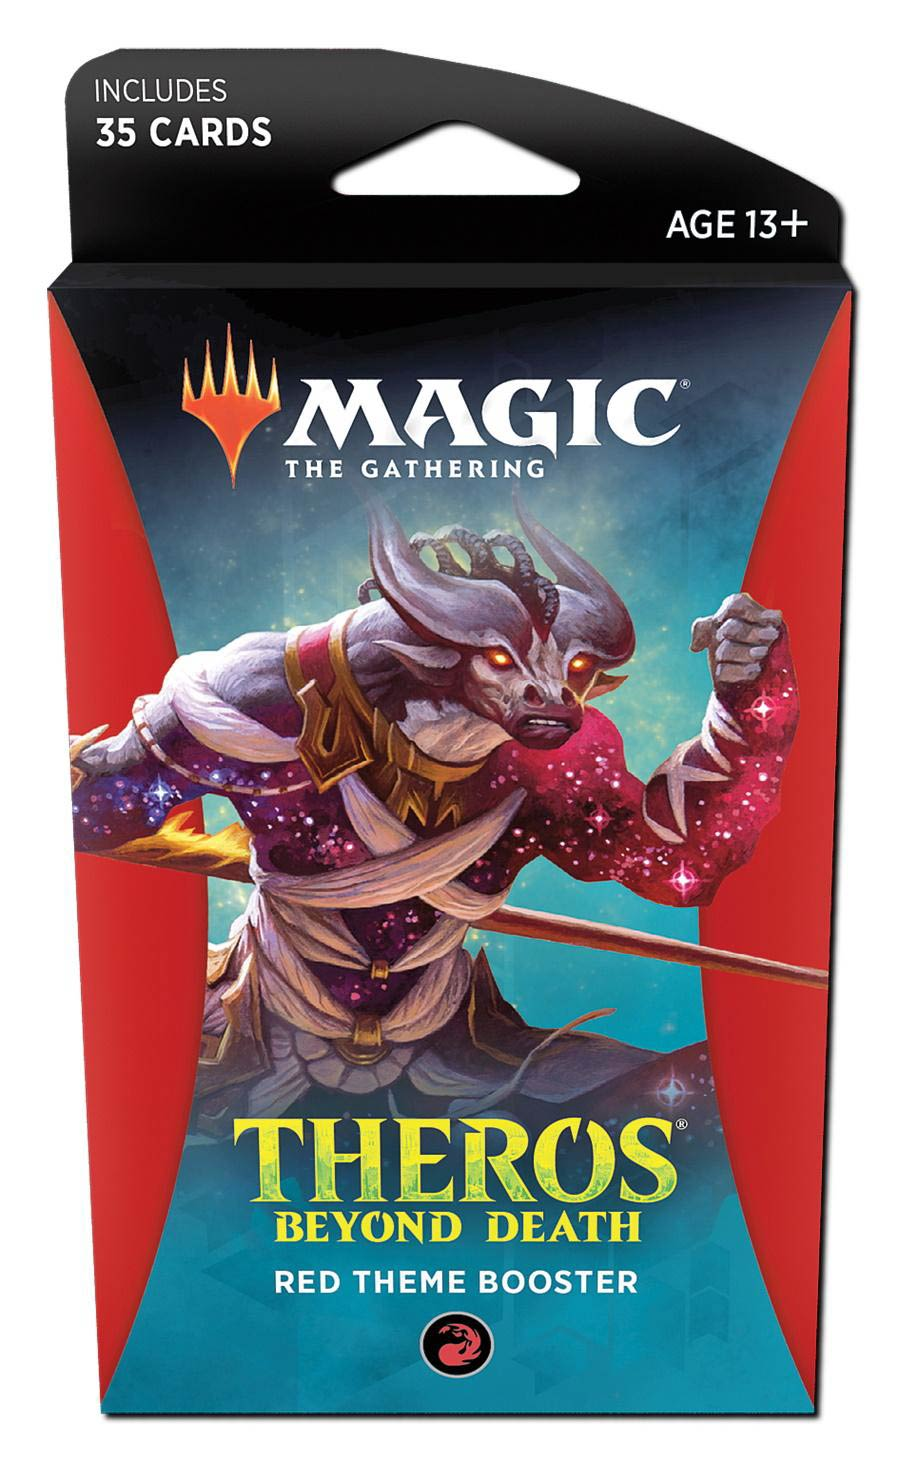 Magic The Gathering Theros Beyond Death Theme Booster Pack - Red